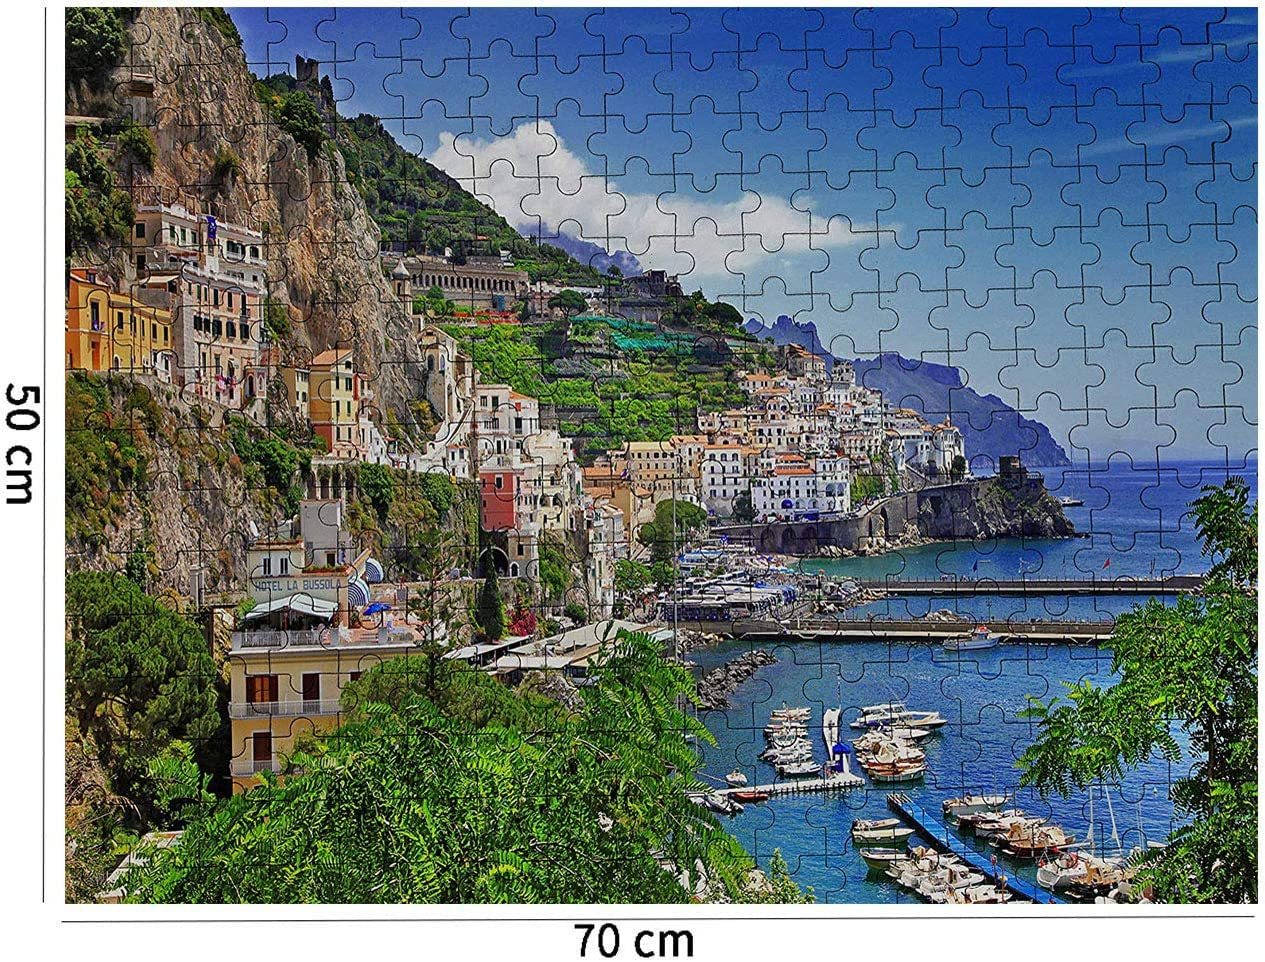 Famous European Town Seaport Harbour Losmmney Italy Positano Aegean Sea Coast 1000 Pieces Wooden Jigsaw Puzzles for Adults Home Decoration